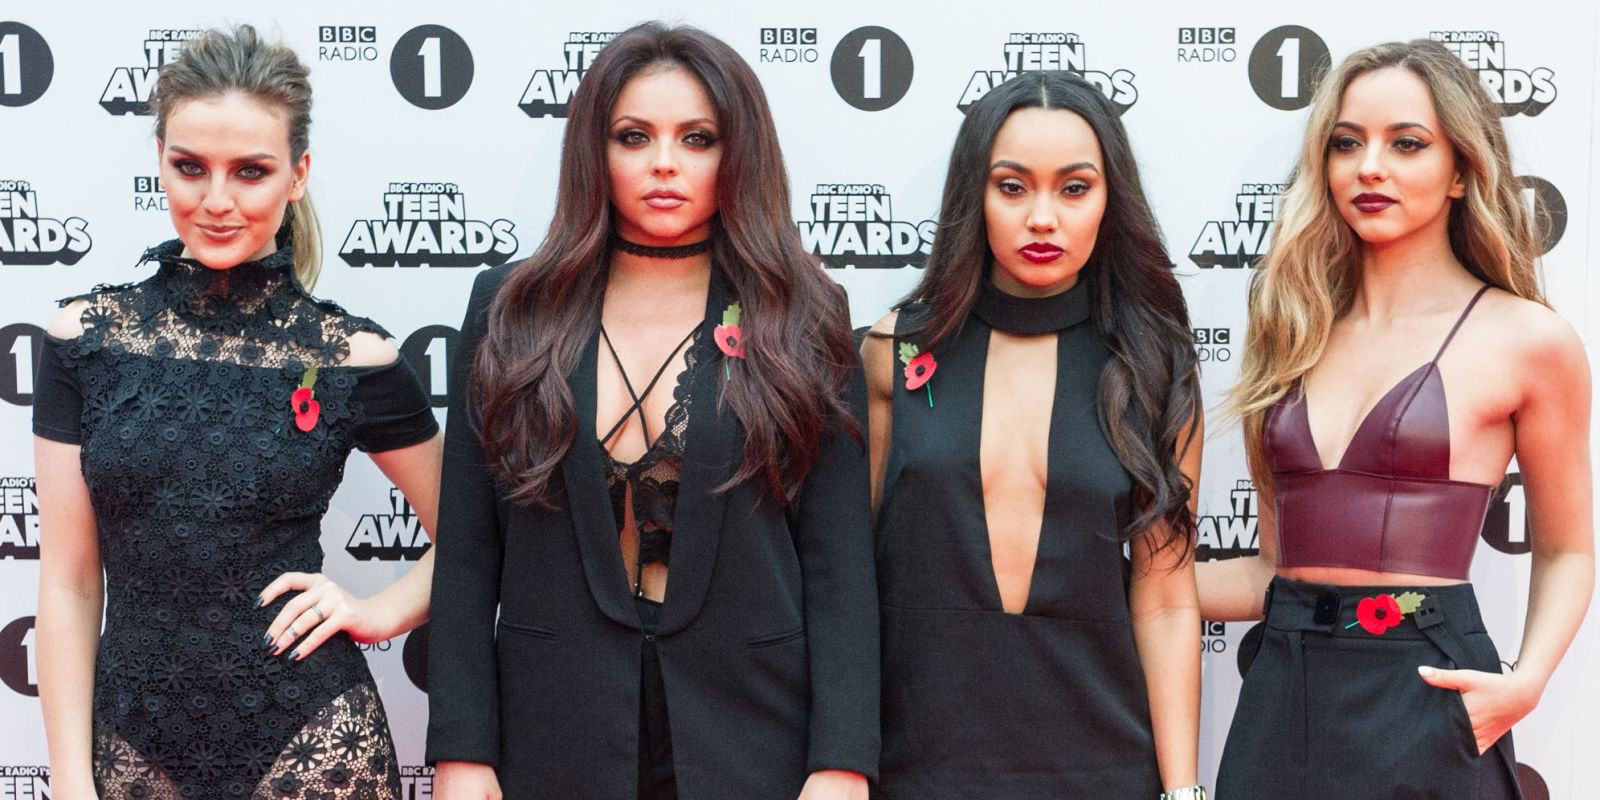 little mix will perform their new single 'secret love song' on the